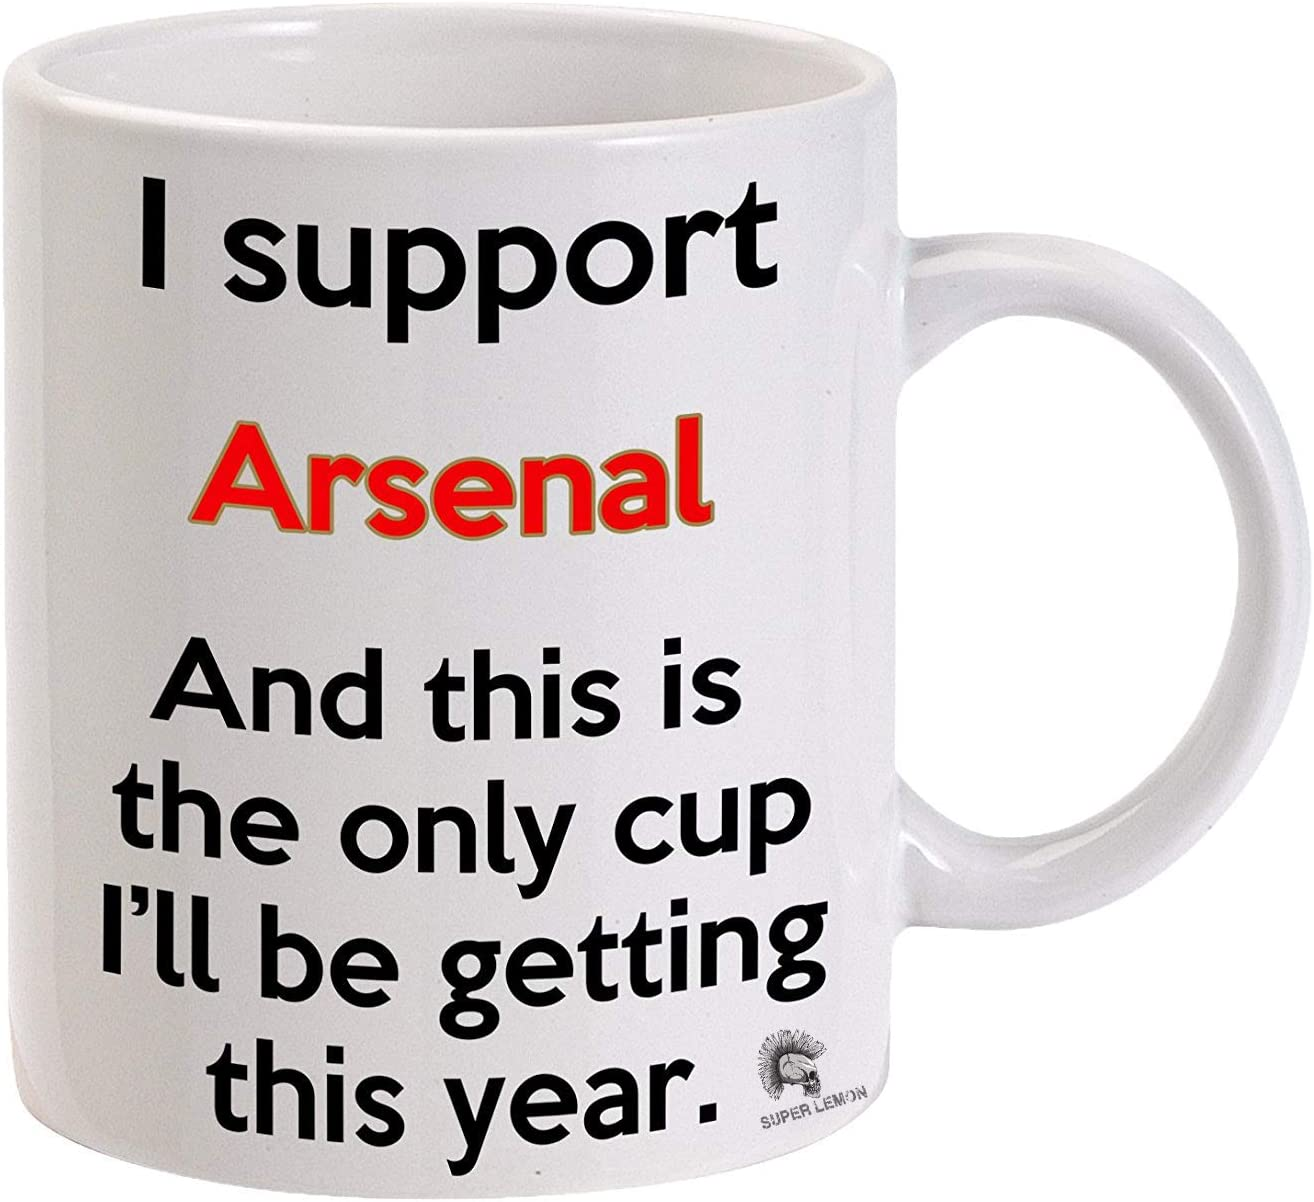 Arsenal Premier League Funny Meme Football Tea Cup Coffee Mug Great Gift For Any Supporter Of Liverpool Manchester Tottenham To Give To Any Arsenal Fan For Work Office Machine Washable Amazon Co Uk Kitchen